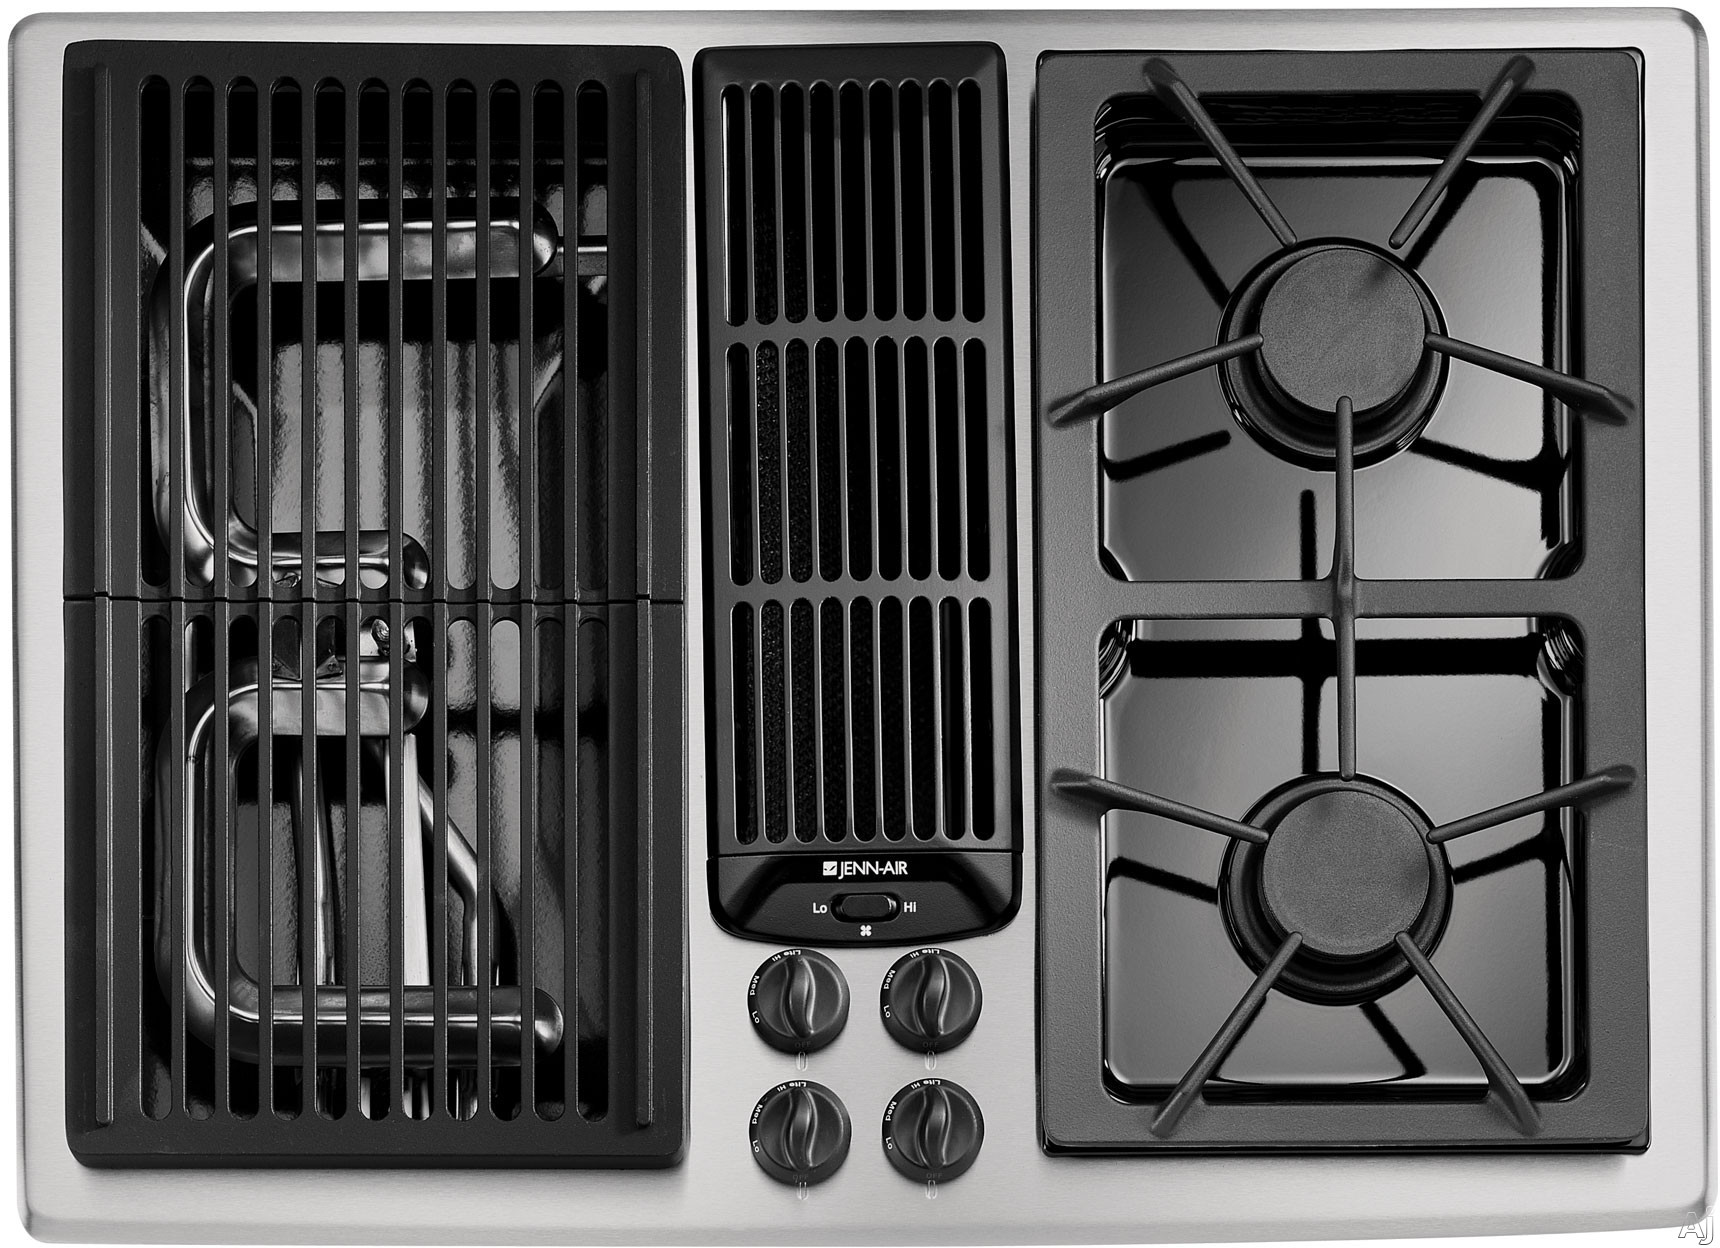 30 Gas Cooktops With Griddle http://www.electronics-and-appliances.com/appliances/jenn_air/jenn_air_cooktop.htm